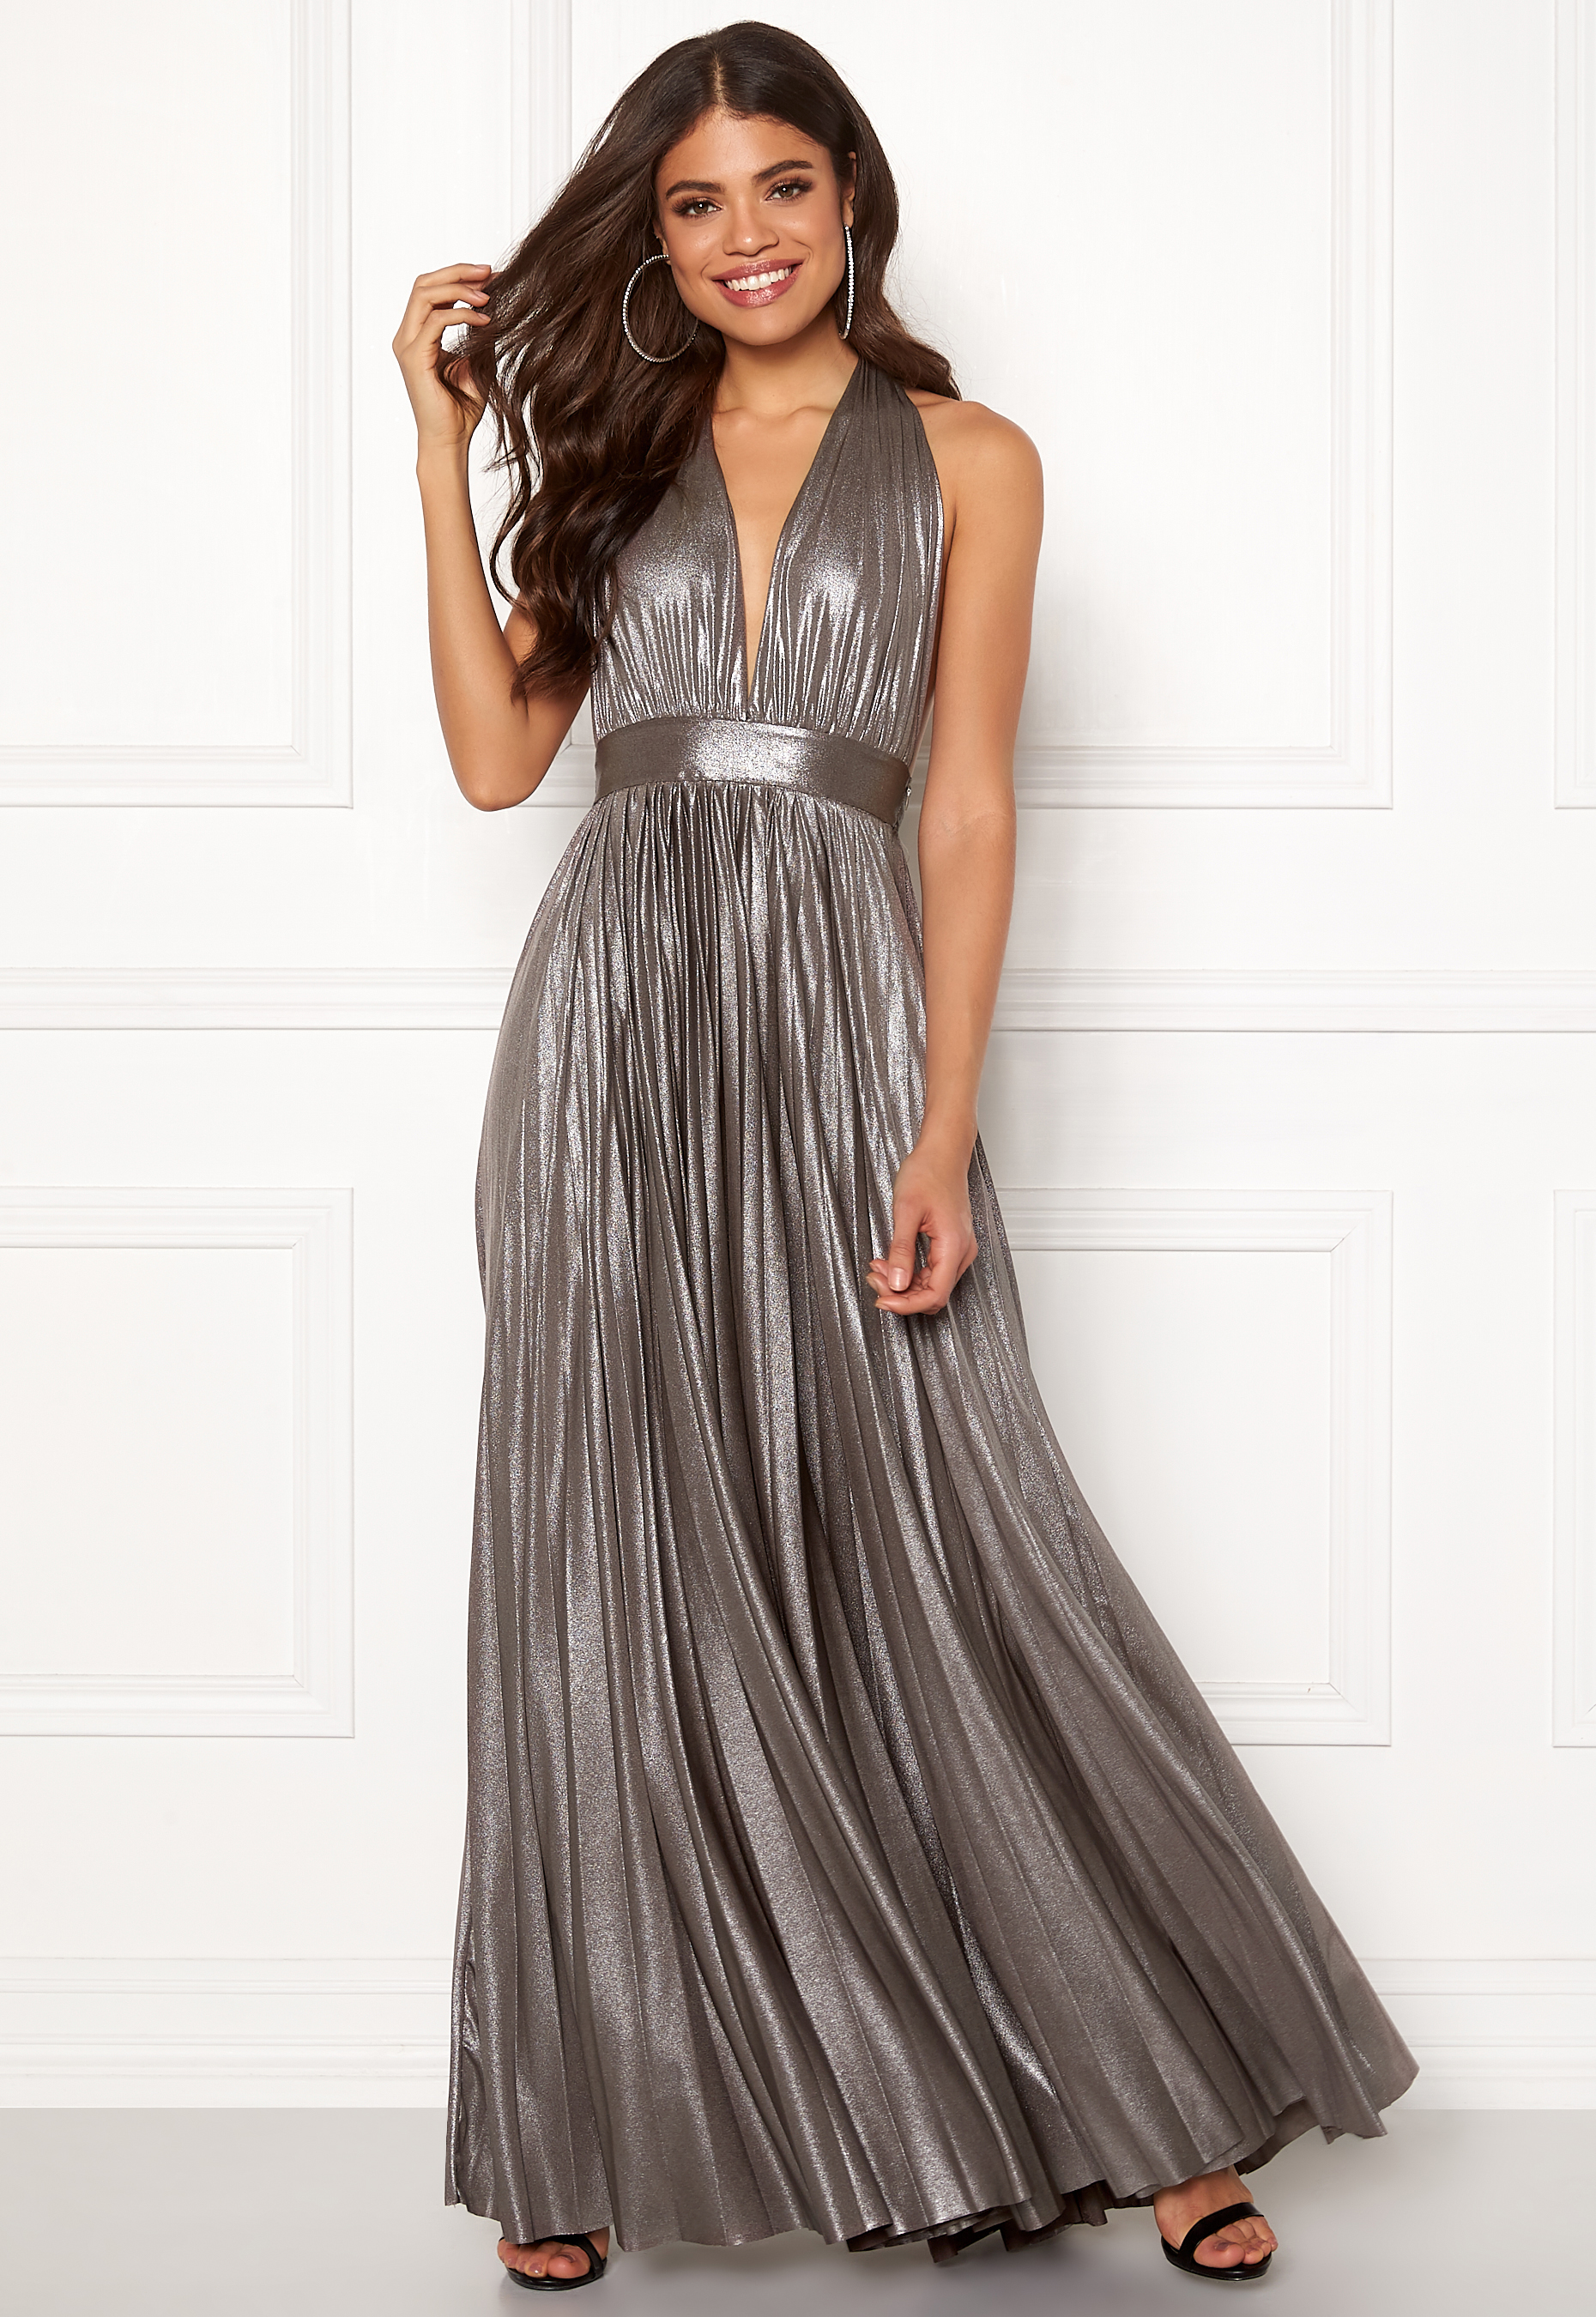 https://images.bubbleroom.eu/data/product/raw/goddiva-deep-v-neck-metallic-dress-silver_2.jpg